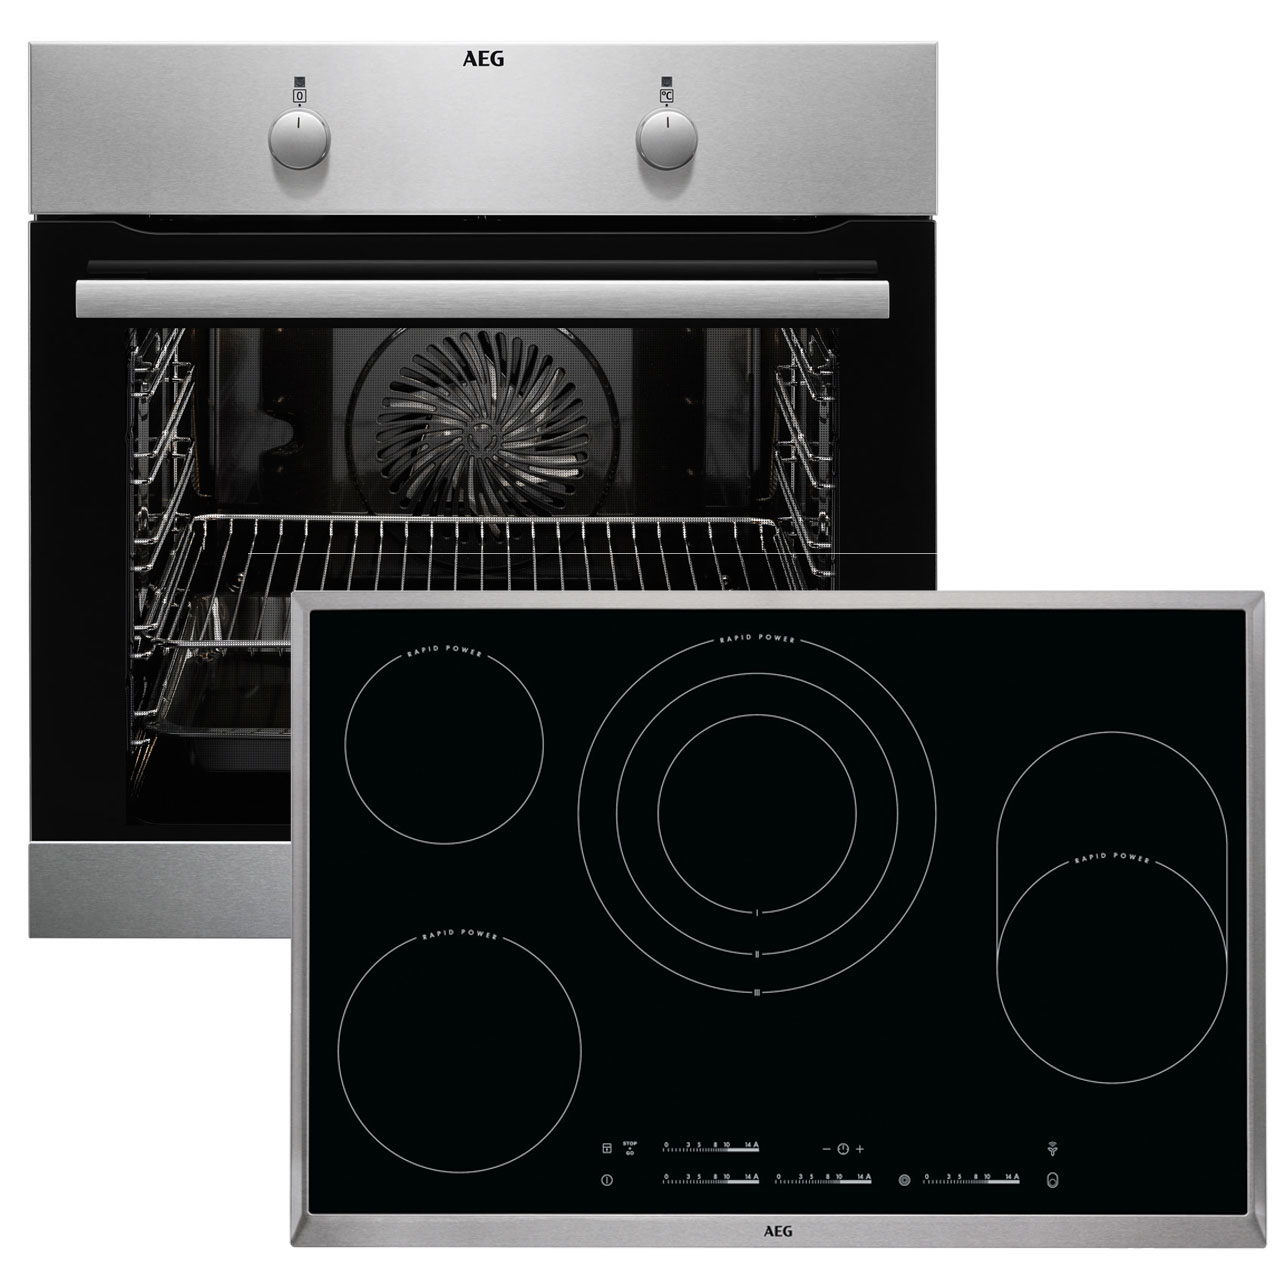 aeg beb233 backofen set 944187701 beb230010m backofen hk854870x b autark cer ebay. Black Bedroom Furniture Sets. Home Design Ideas